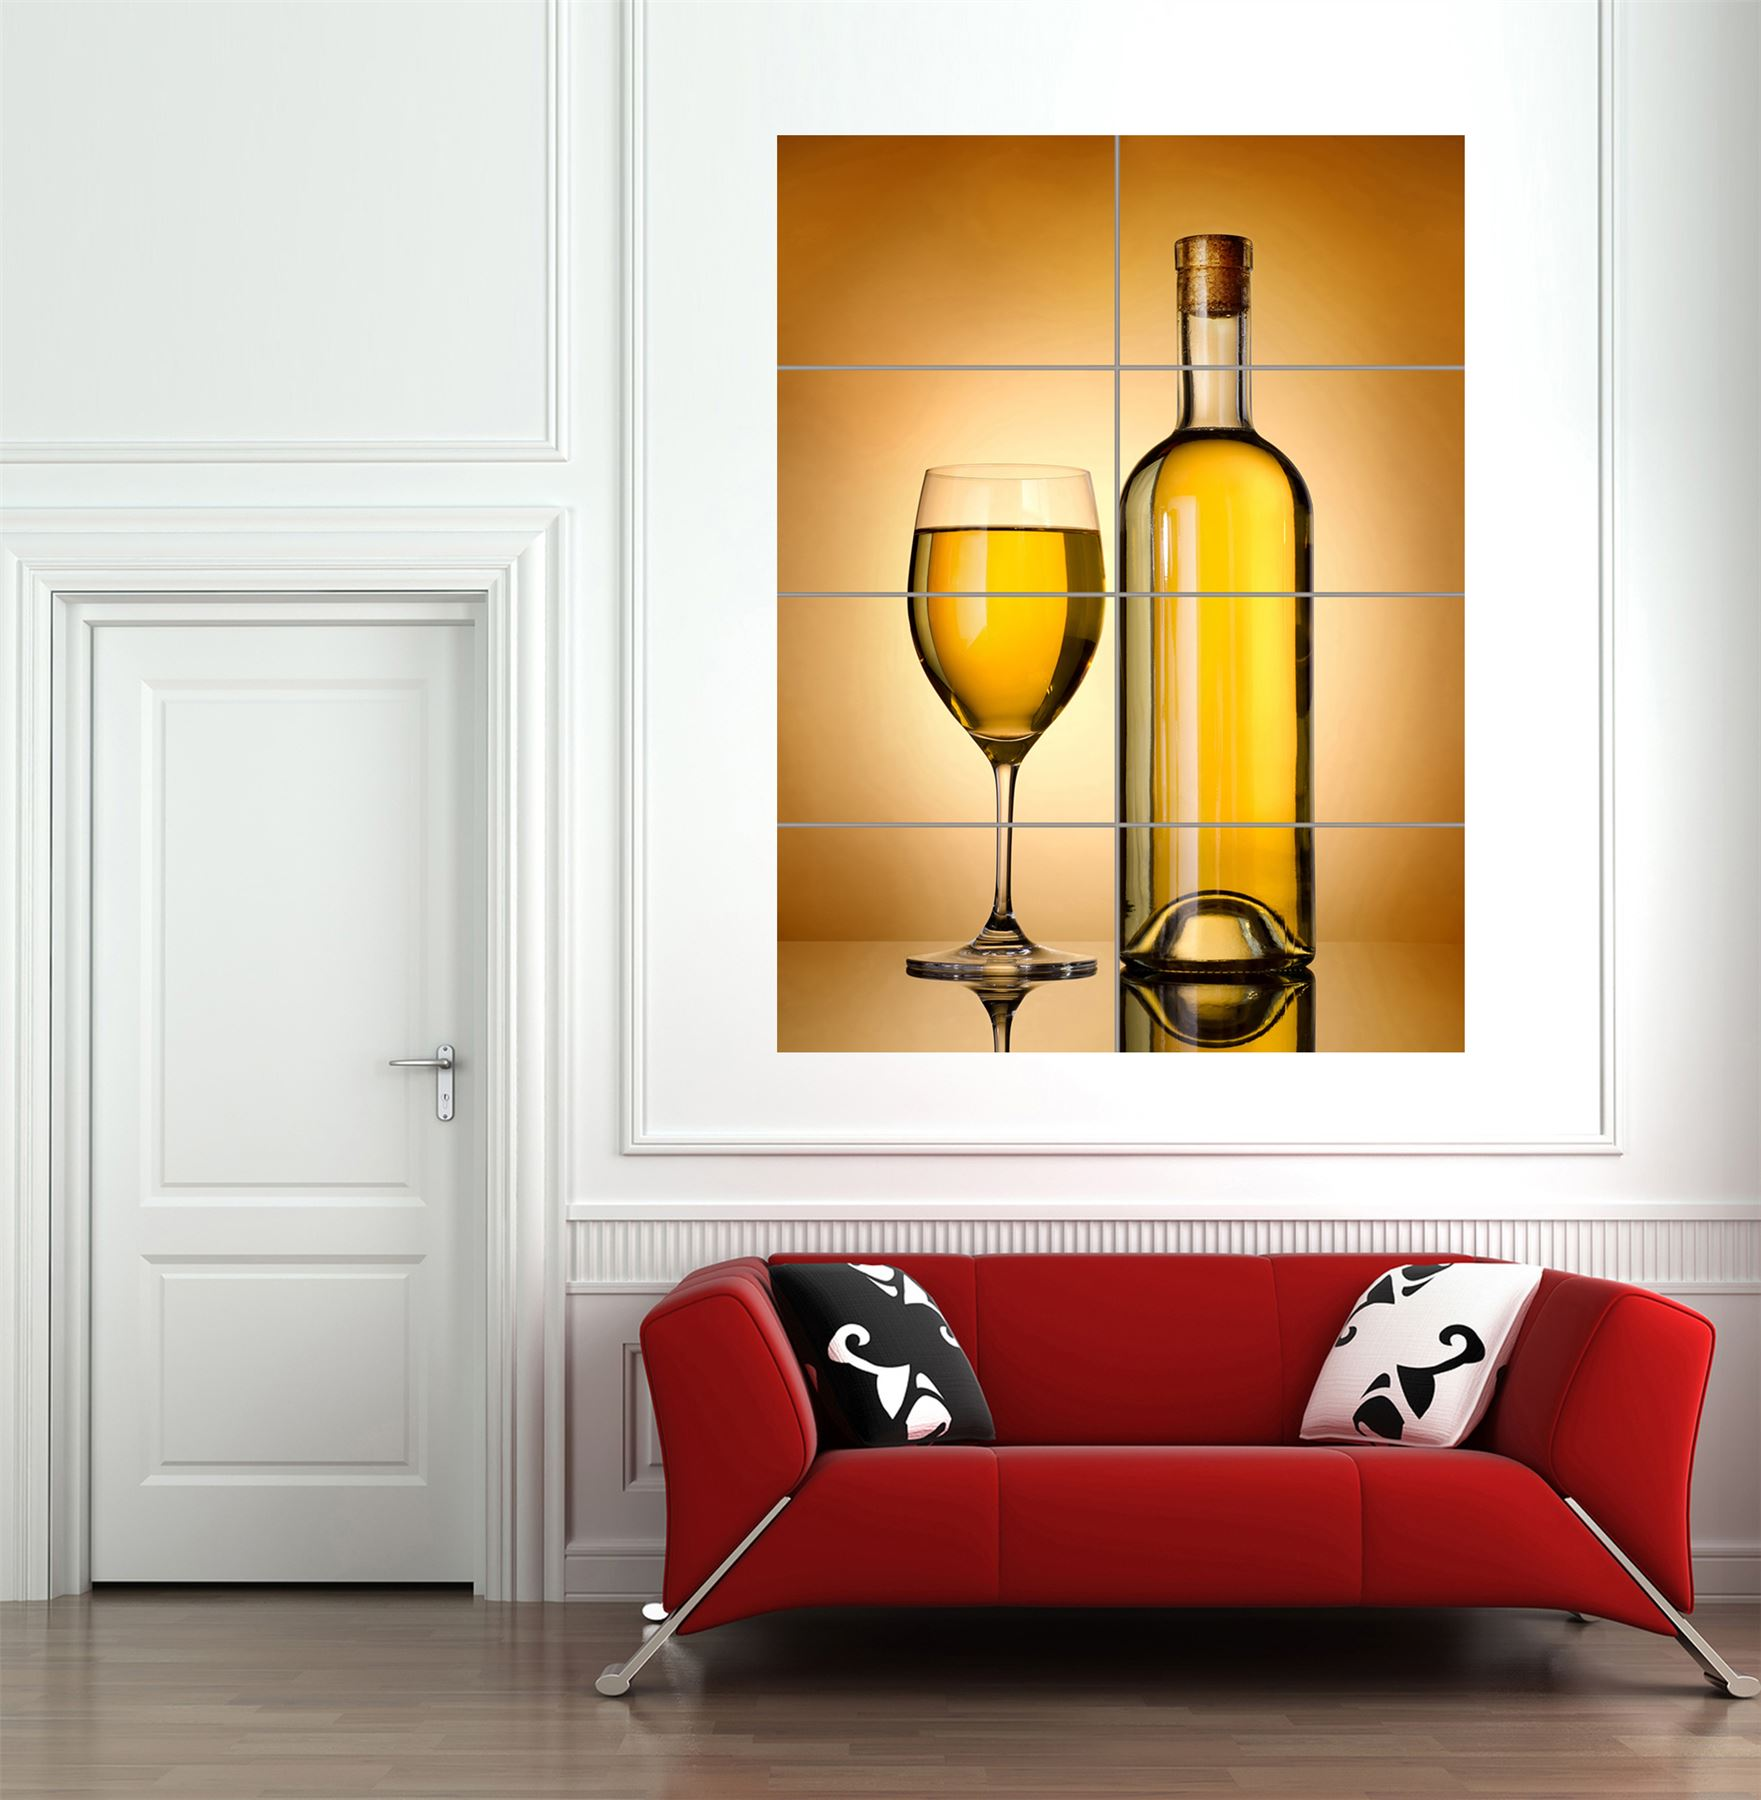 WINE-BOTTLE-GLASS-YELLOW-GIANT-WALL-ART-PRINT-HOME-DECOR-POSTER-MP1543